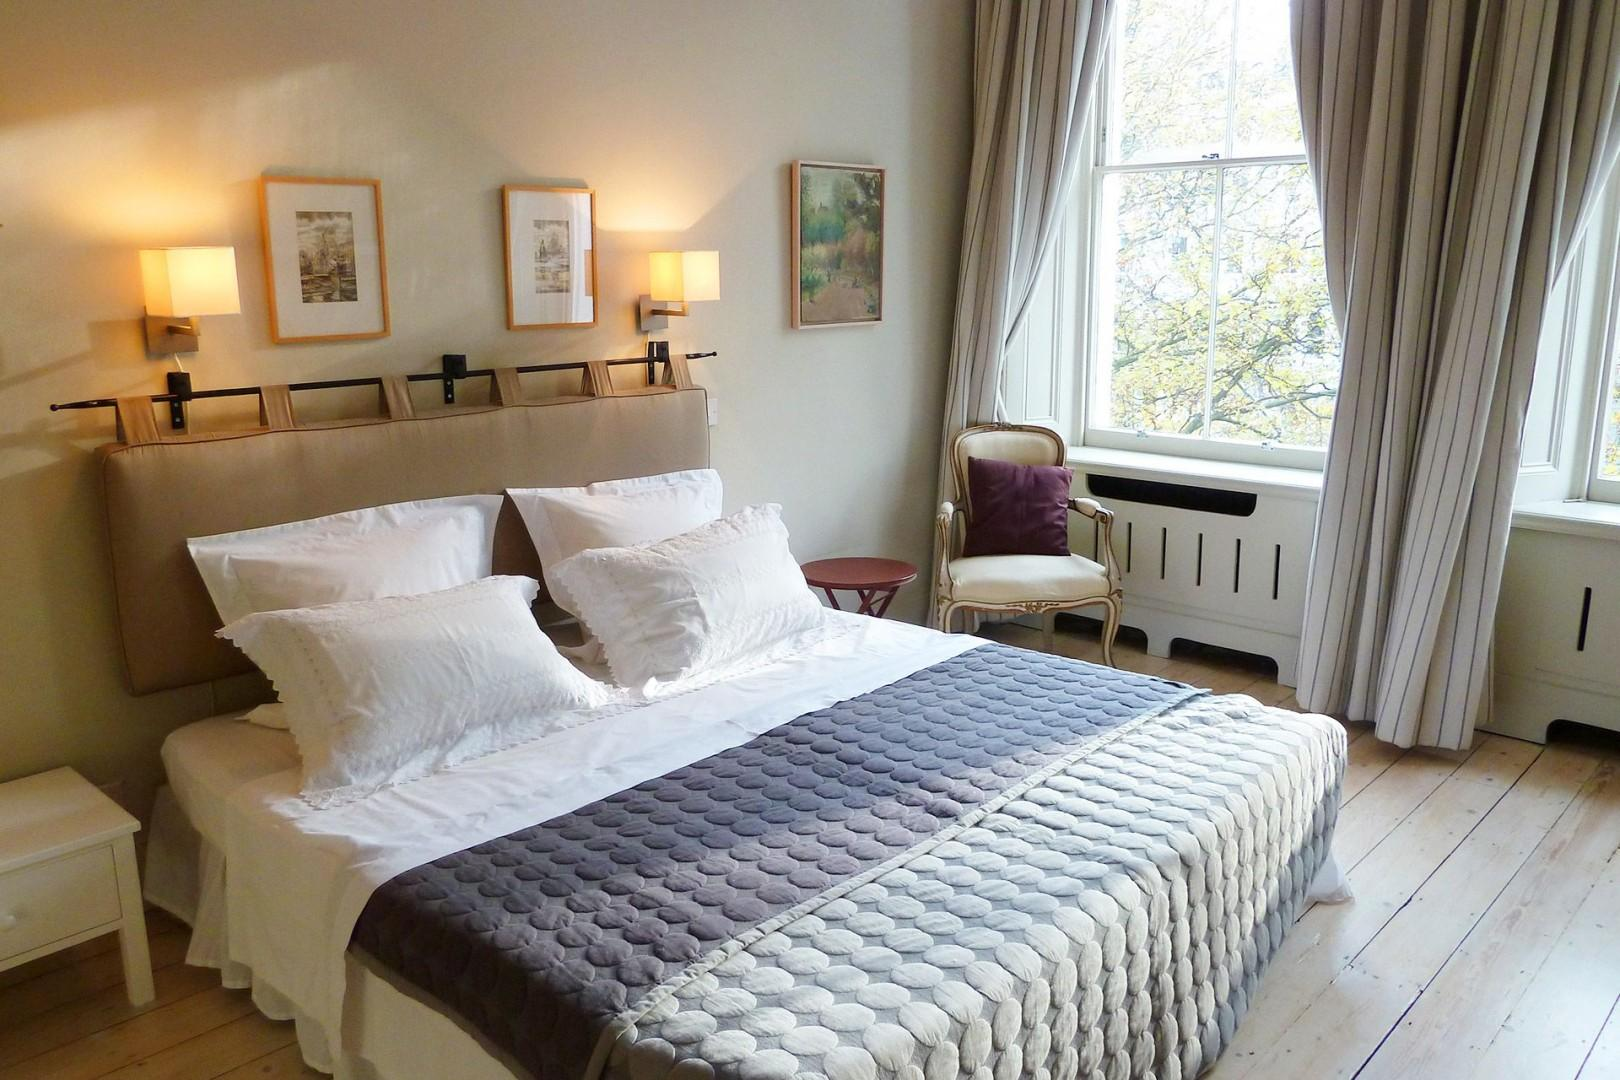 Stunning first bedroom with luxurious bed